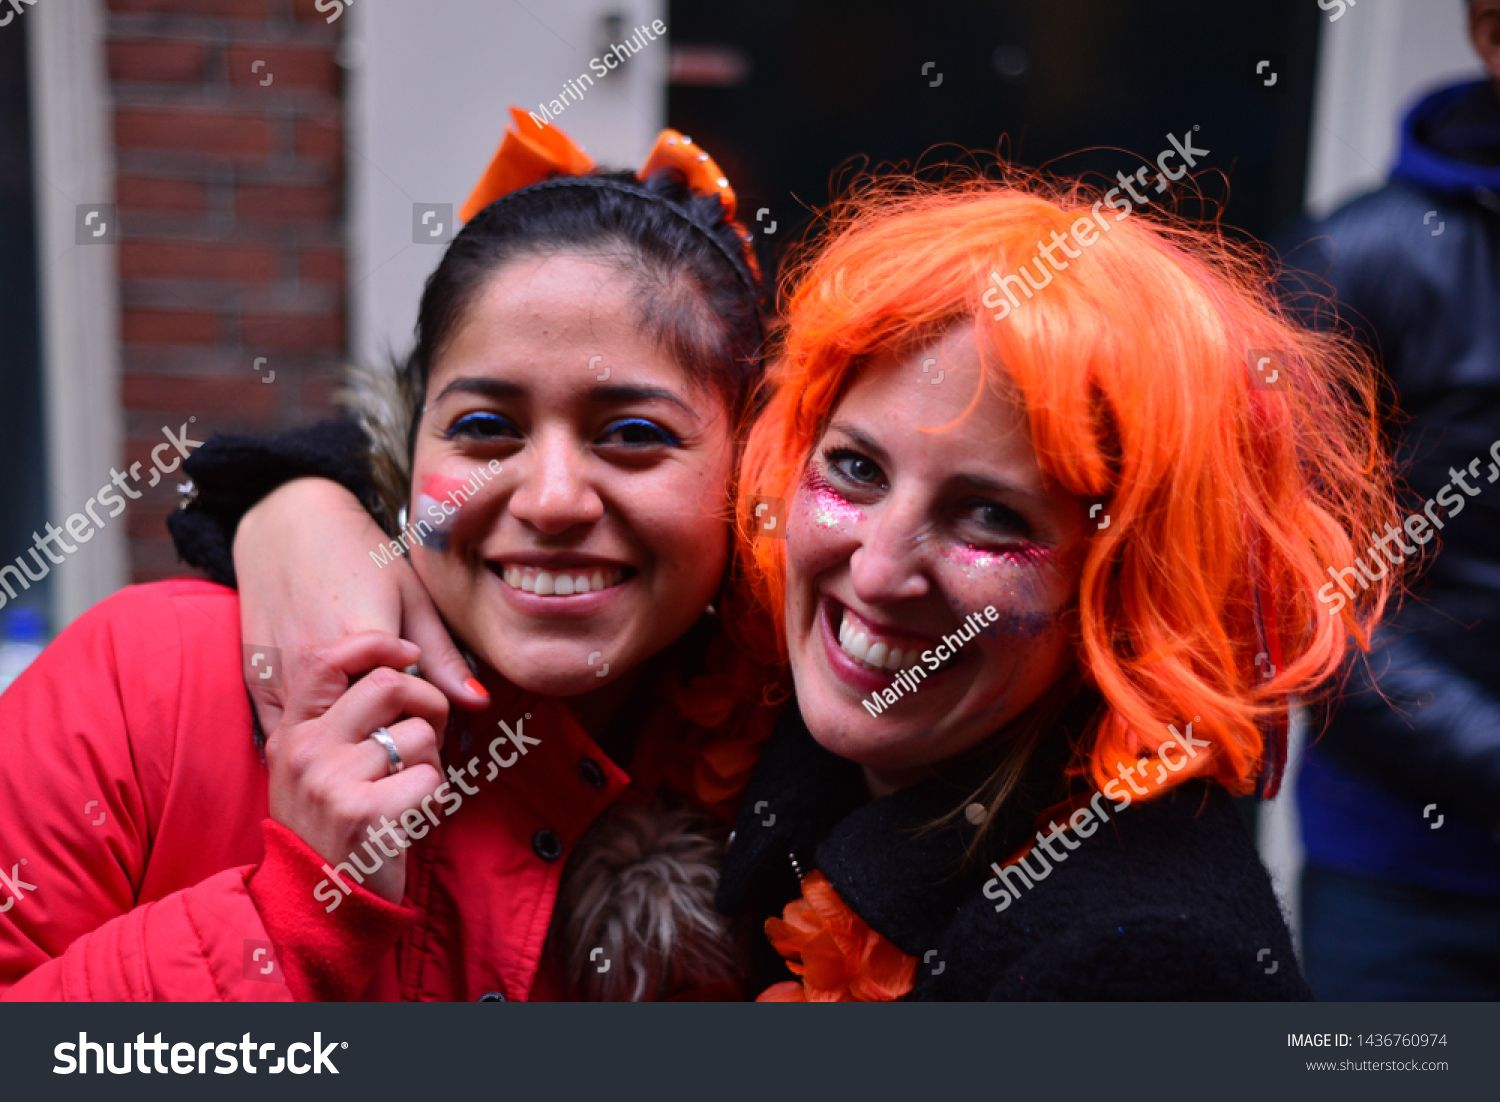 Amsterdam Netherlands April 27th 2019 King S Day Is A National Holiday In The Kingdom Of The Netherland In 2020 Kingdom Of The Netherlands Stock Photos Celebrities